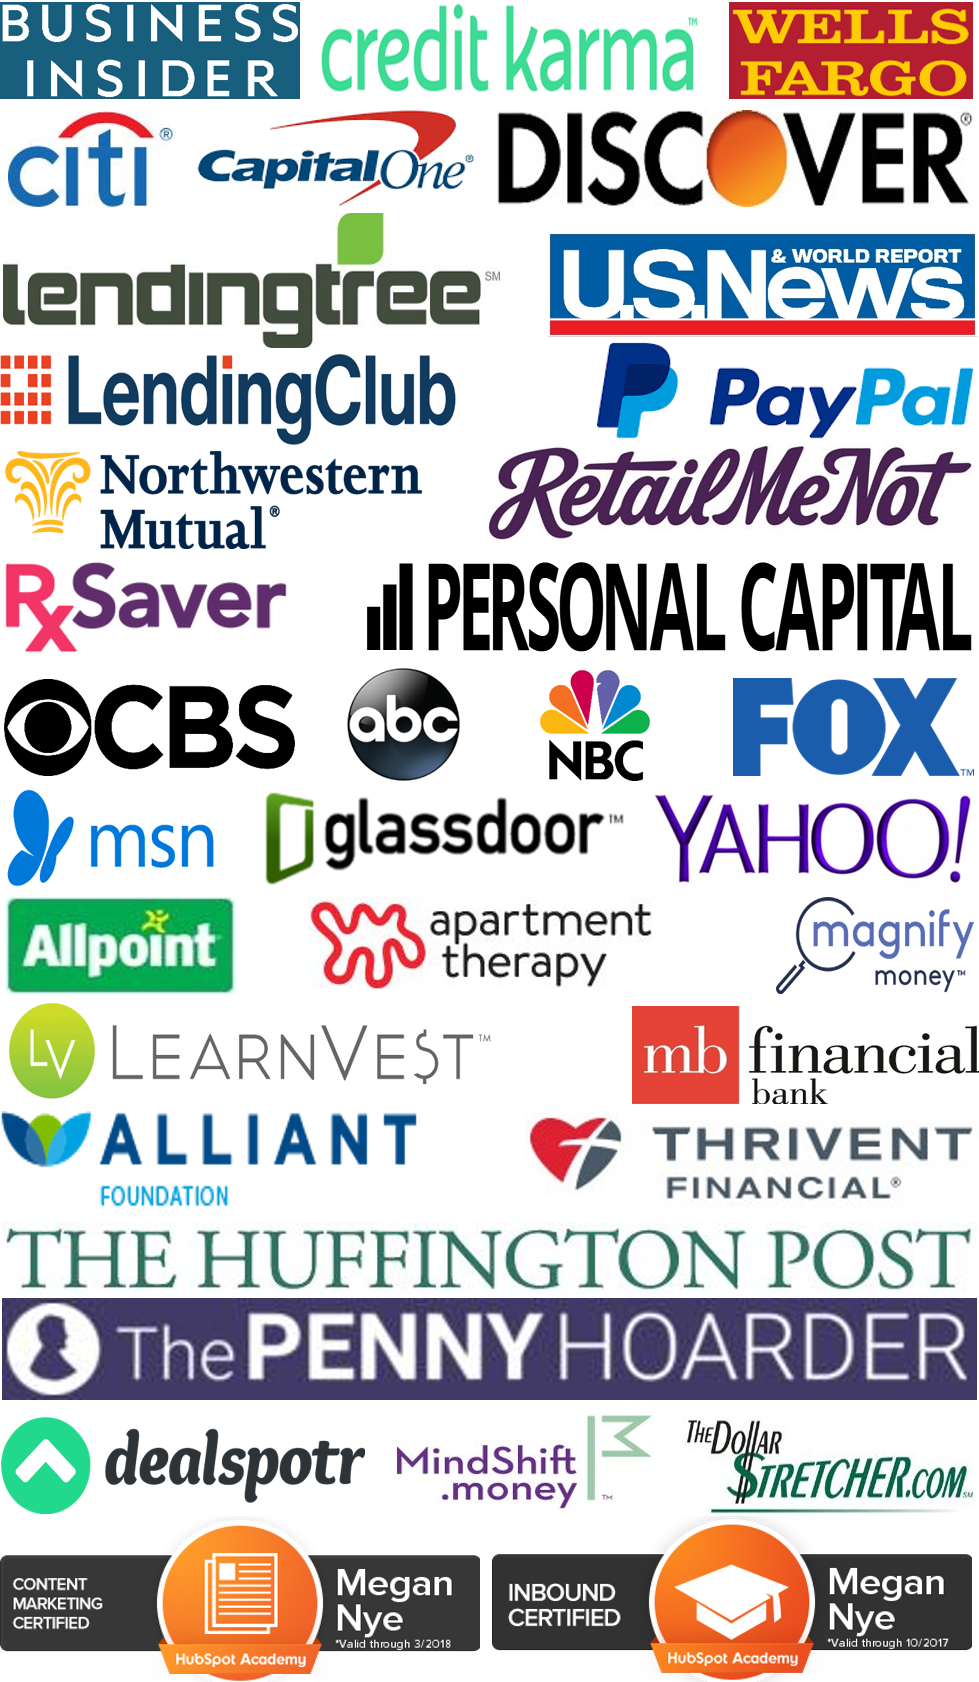 Business Insider, Wells Fargo, Allpoint, U.S. News & World Report, Citi, Credit Karma, Discover, Capital One, PayPal, Personal Capital, LendingClub, RxSaver, RetailMeNot, Cardtronics, SuperScript Marketing, Pace Communications, Thrivent Magazine / Thrivent Financial, MB Financial Bank, Lending Tree, ABC, NBC, CBS, Magnify Money, MSN, Glassdoor, Yahoo, Apartment Therapy, FOX, Northwestern Mutual, LearnVest, Alliant Credit Union Foundation, Vibrant Life, The Huffington Post, The Penny Hoarder, Focus on the Family Magazine, MindShift.money, The Dollar Stretcher, ChimpChange, Dealspotr, Our Sunday Visitor Newsweekly, Catholic Update, Hubspot Academy Content Marketing Certified, HubSpot Academy Inbound Certified